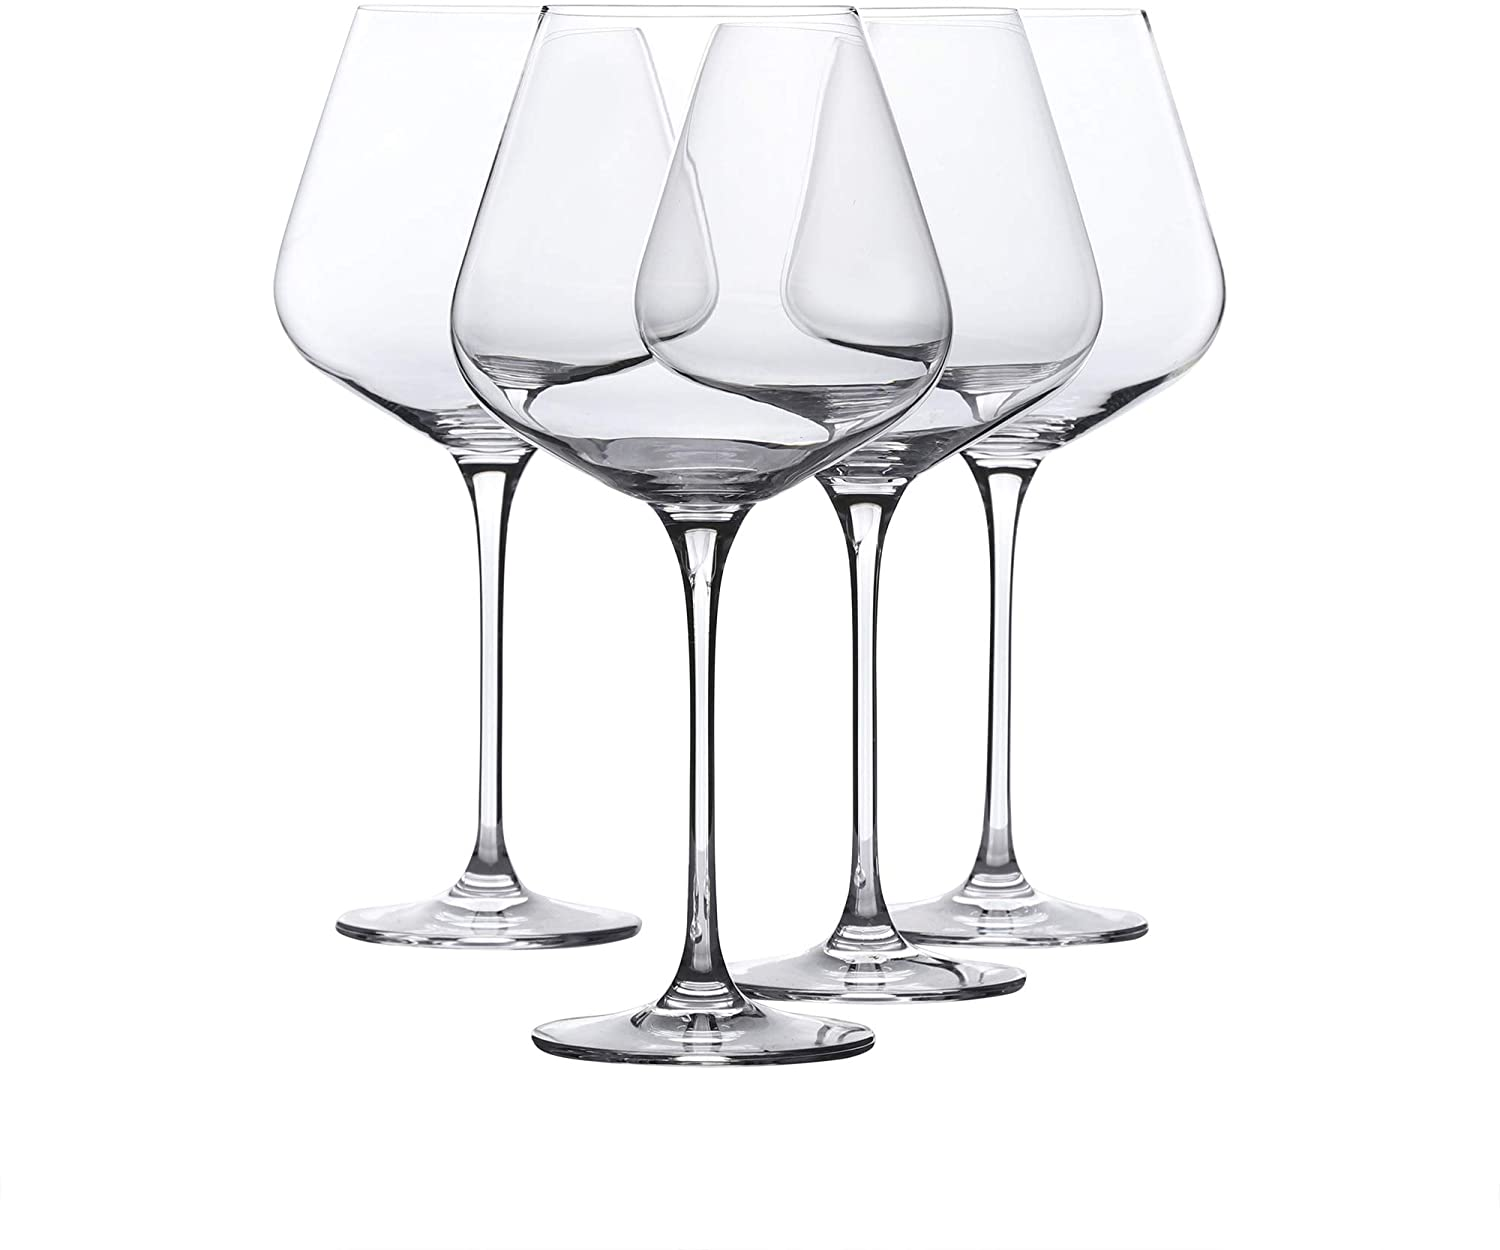 Red Wine Glass - Crystal Glass - Lead Free - Wine Glass Set of 4 (29 Ounce)